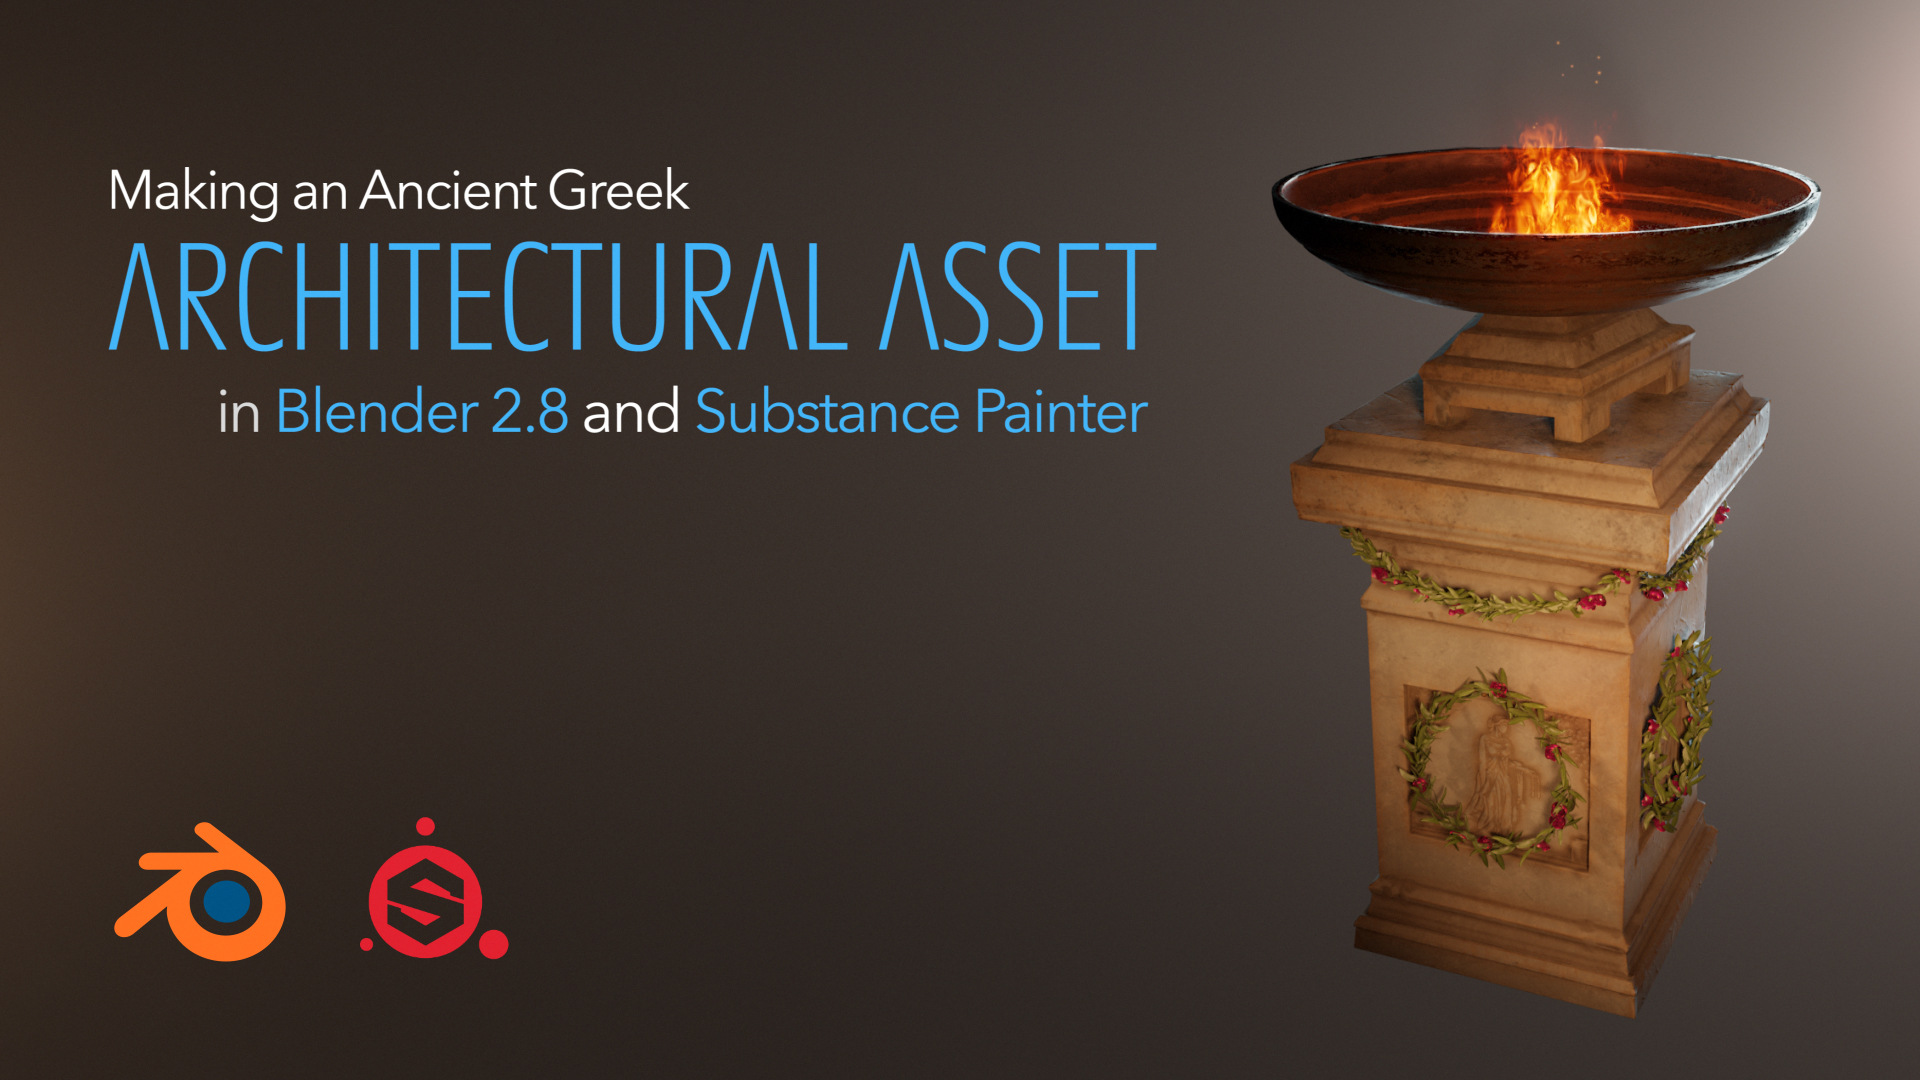 In this series you will learn how to model an architectural asset, sculpt engravings, UV the asset, add fire and render it. We will be also texturing it in the Substance Painter.